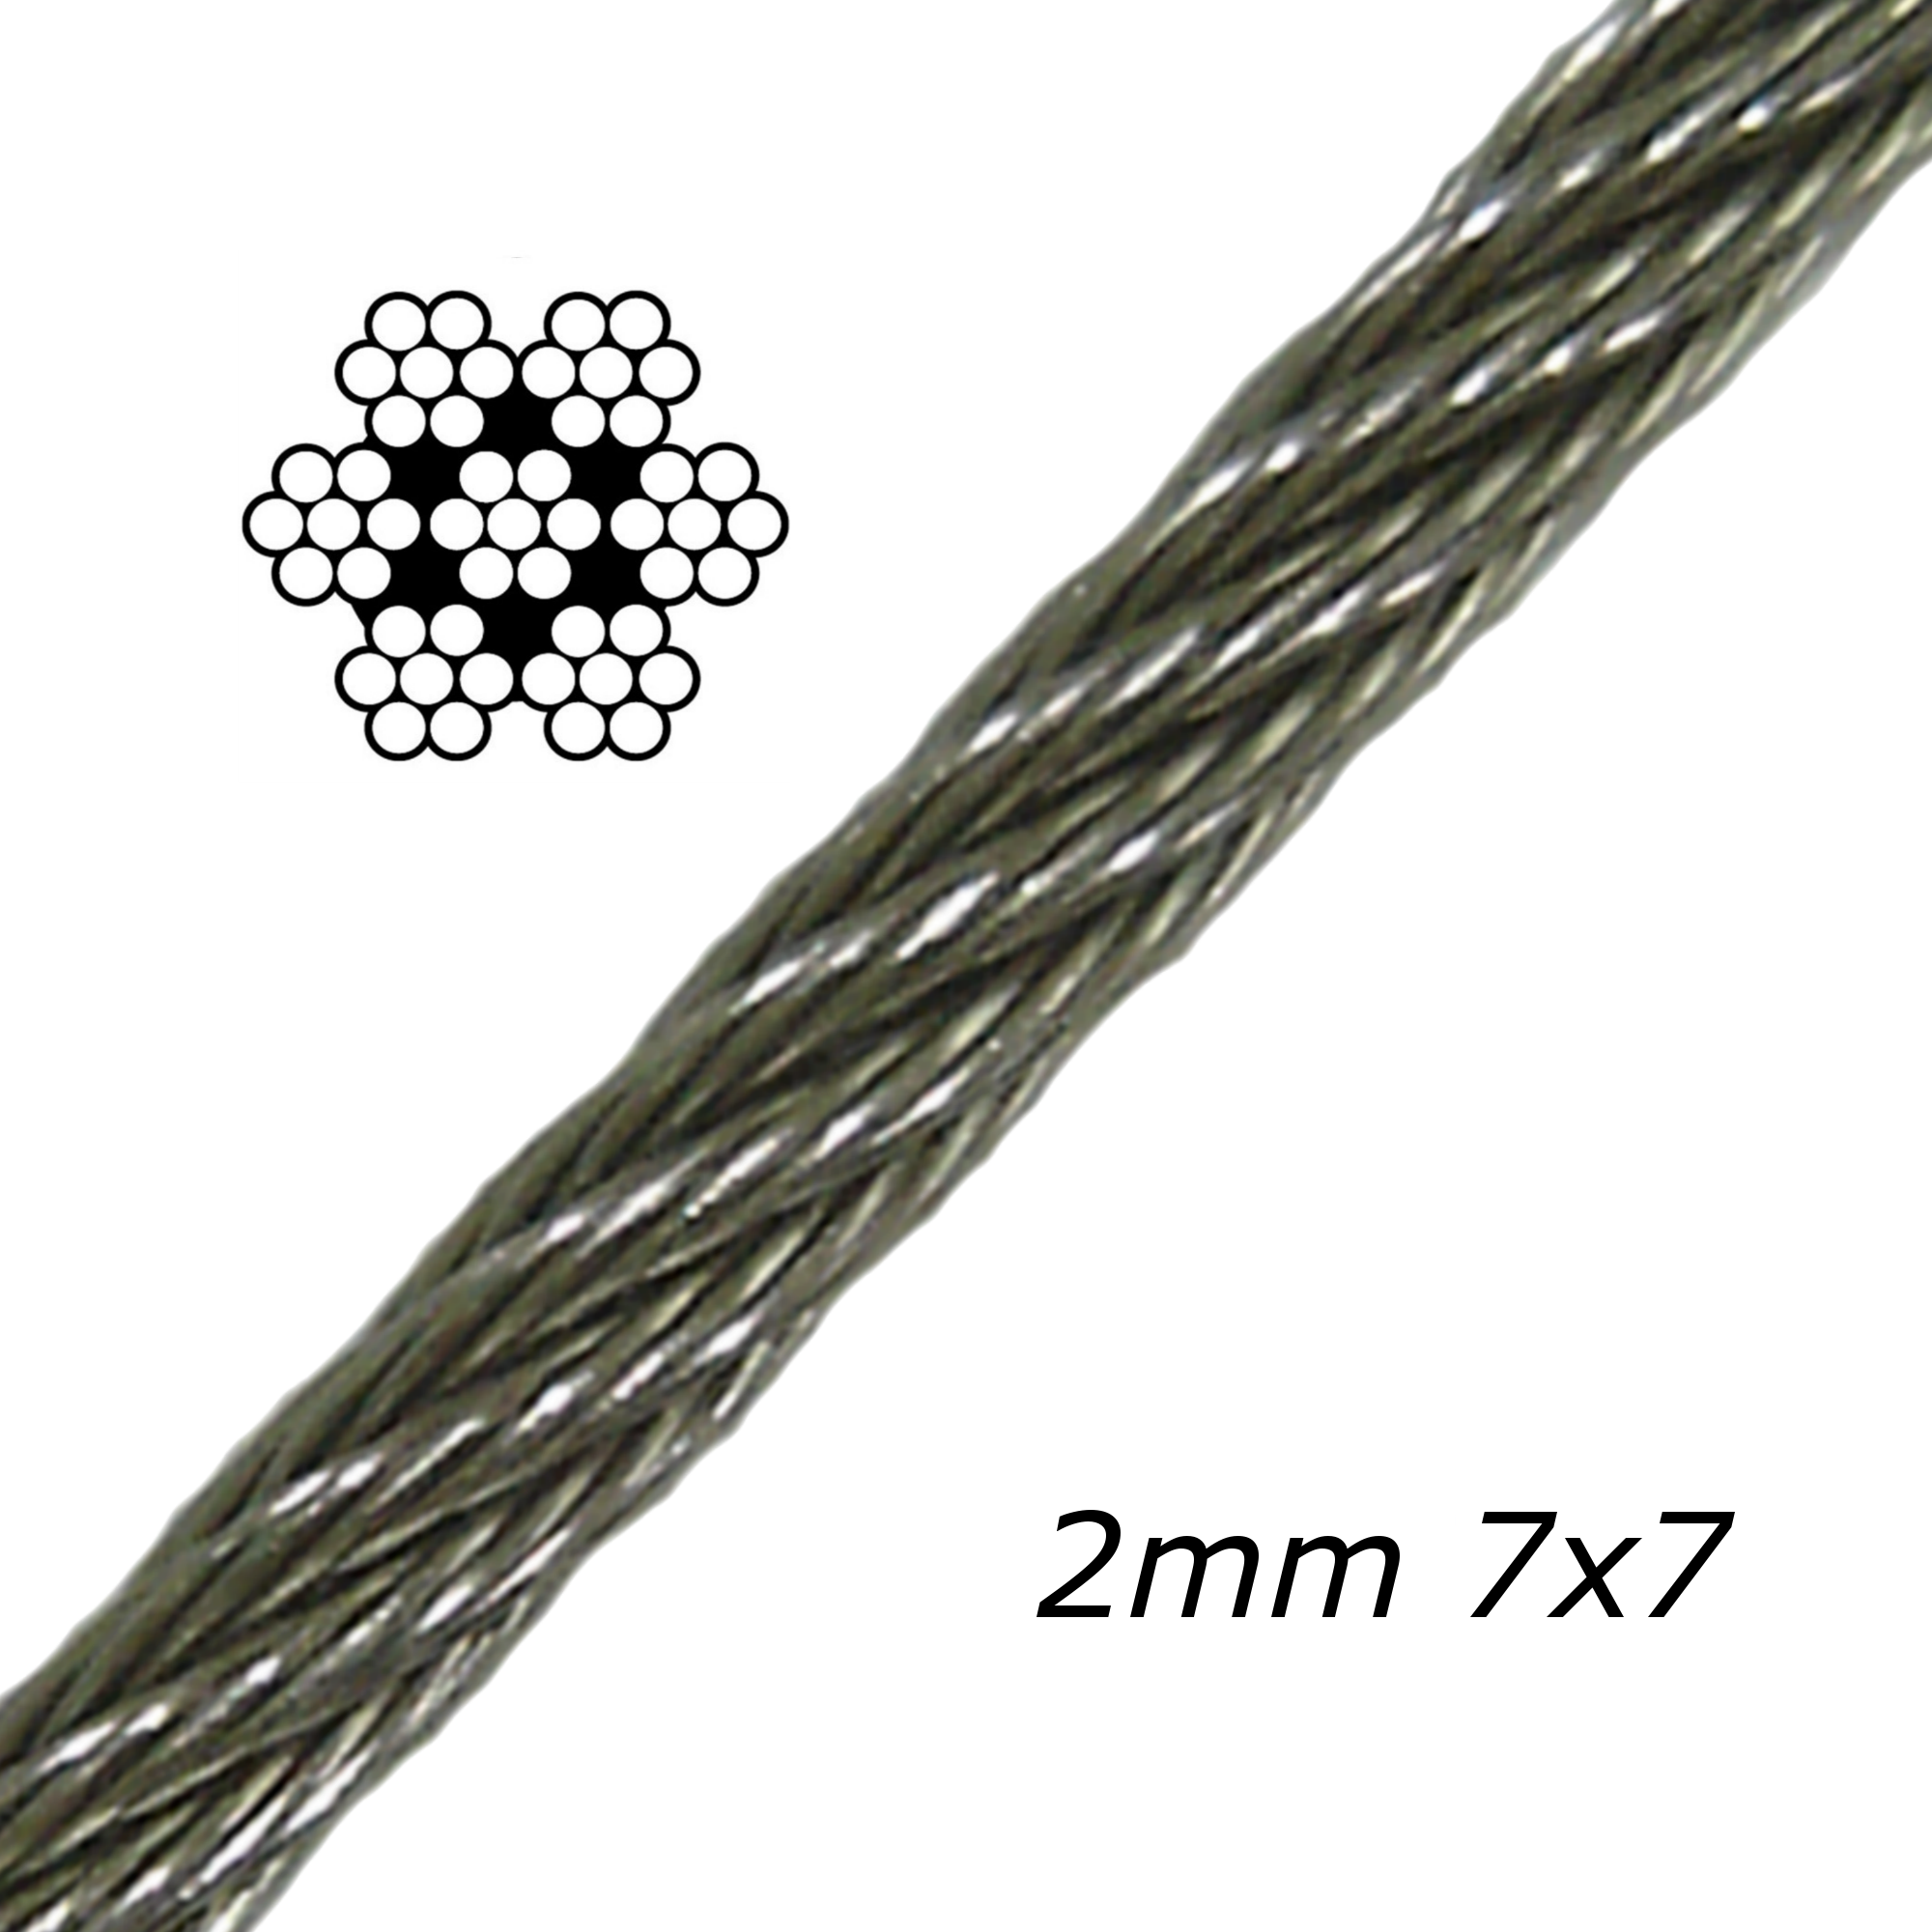 2mm Galvanised Steel Cable 7x7